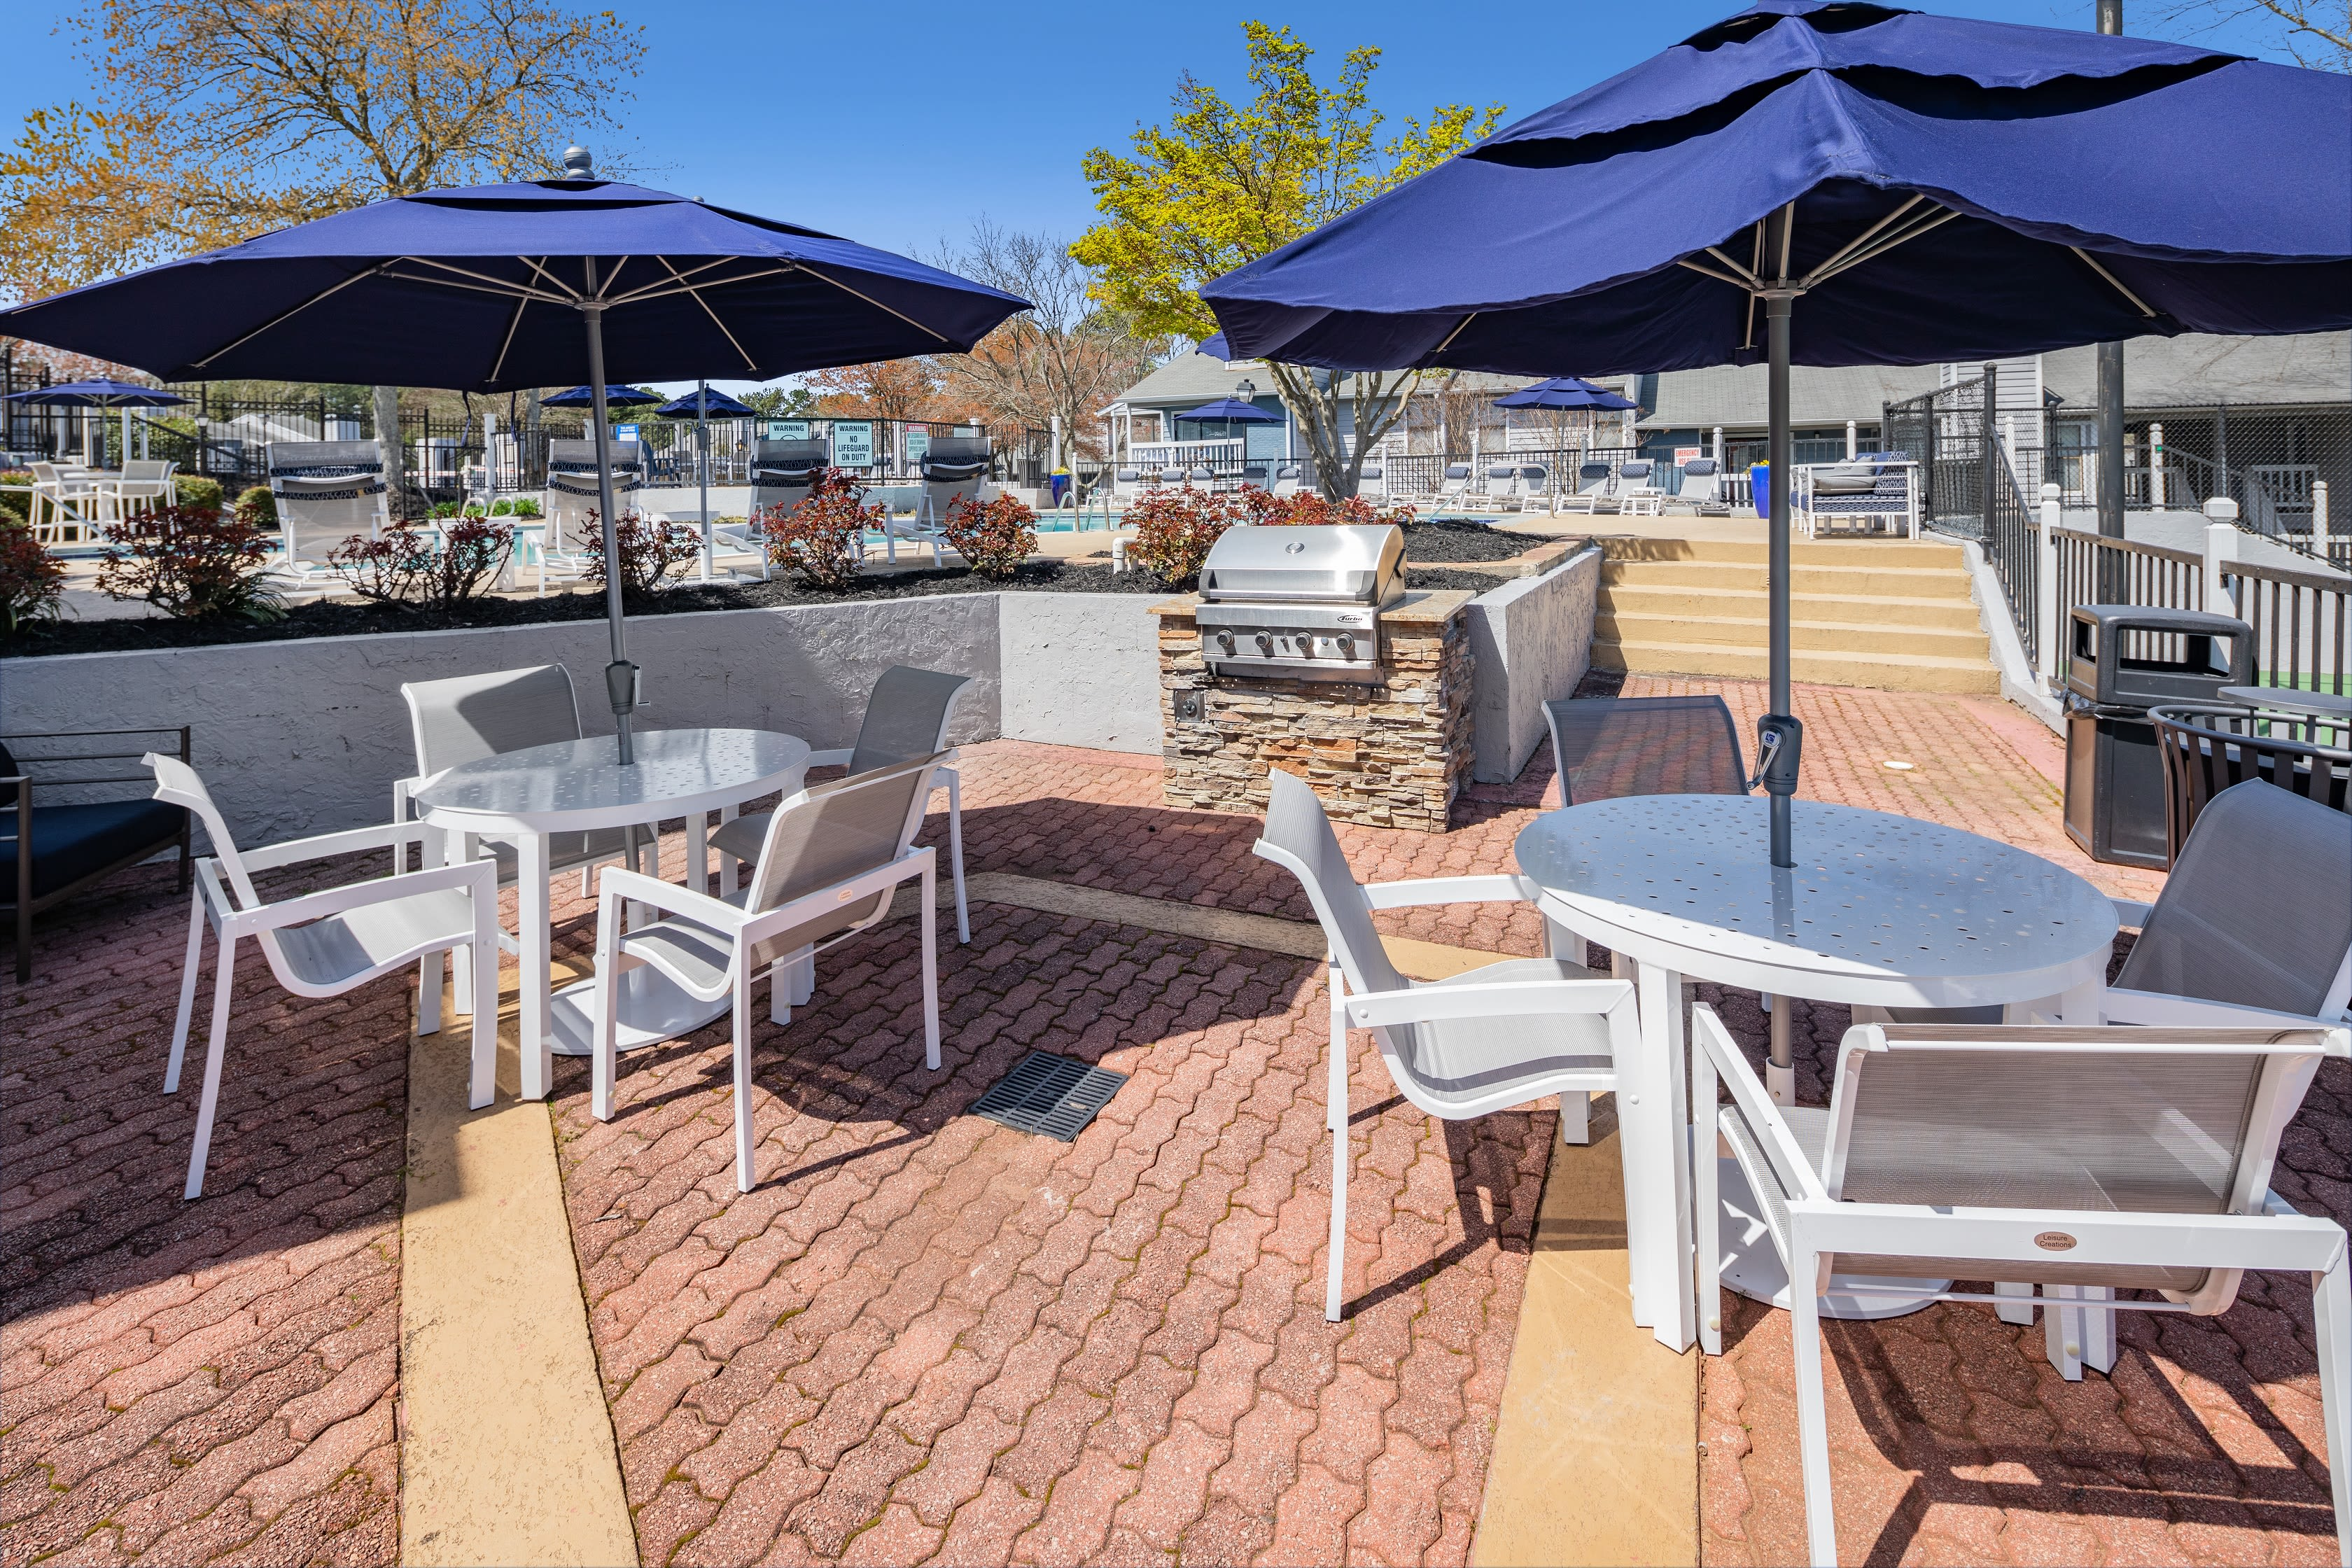 Tables with chairs and umbrellas for outdoor seating The Everette at East Cobb in Marietta, Georgia